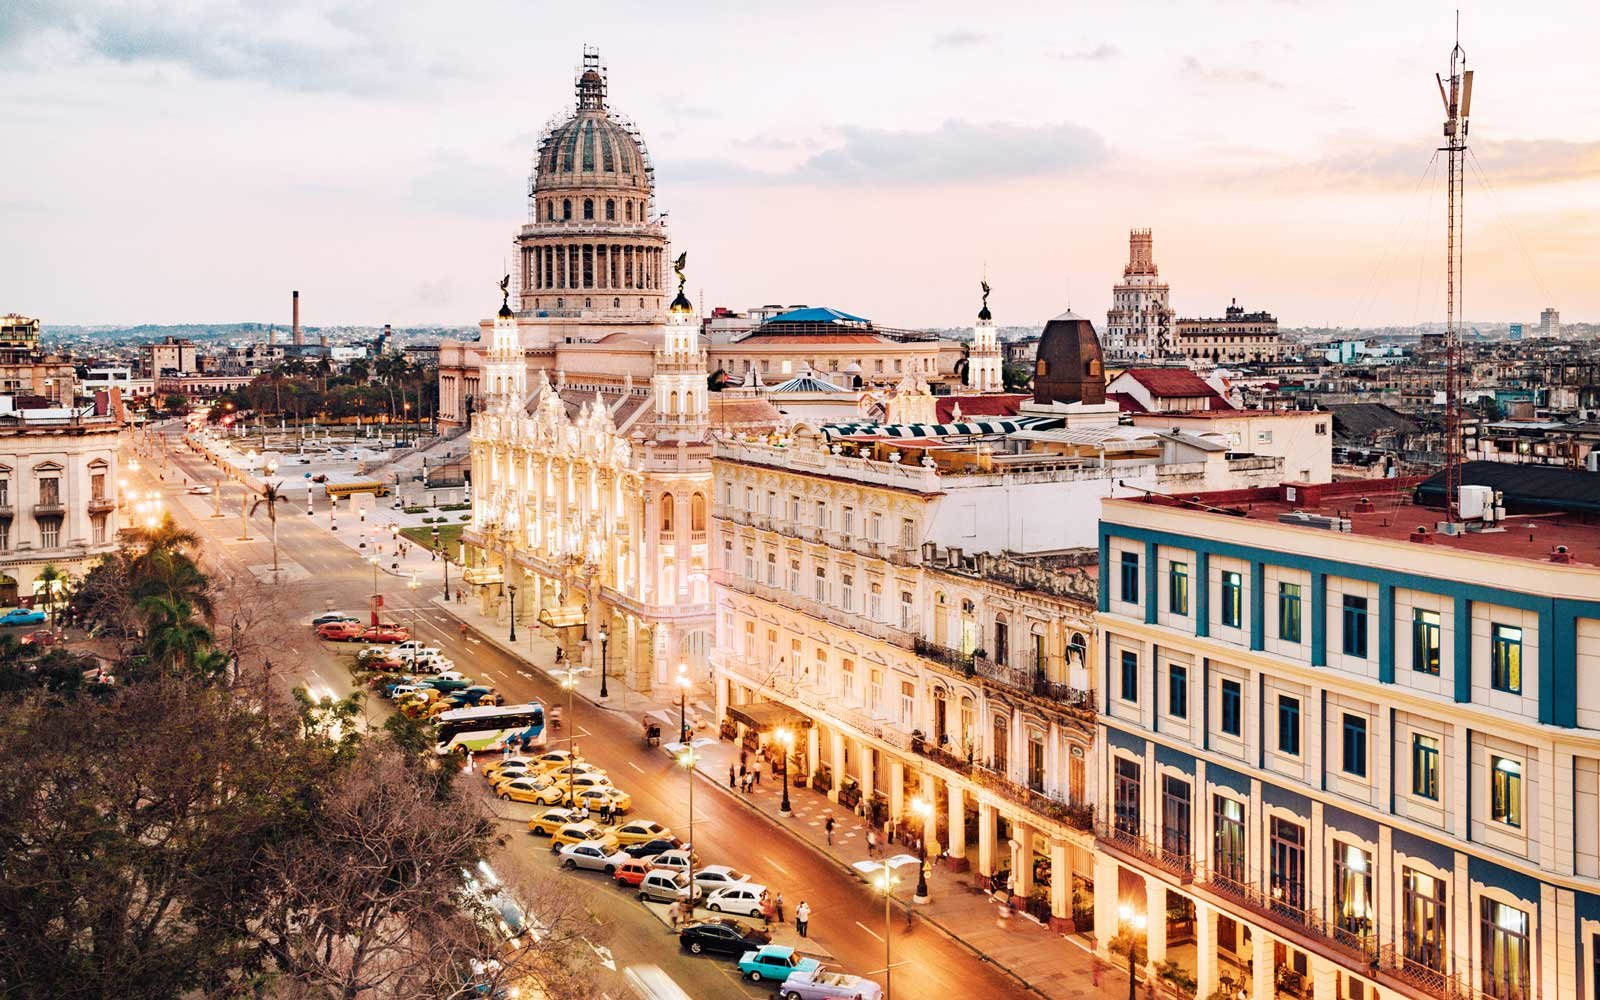 Traveling to Cuba From the U.S. Is About to Get More Complicated